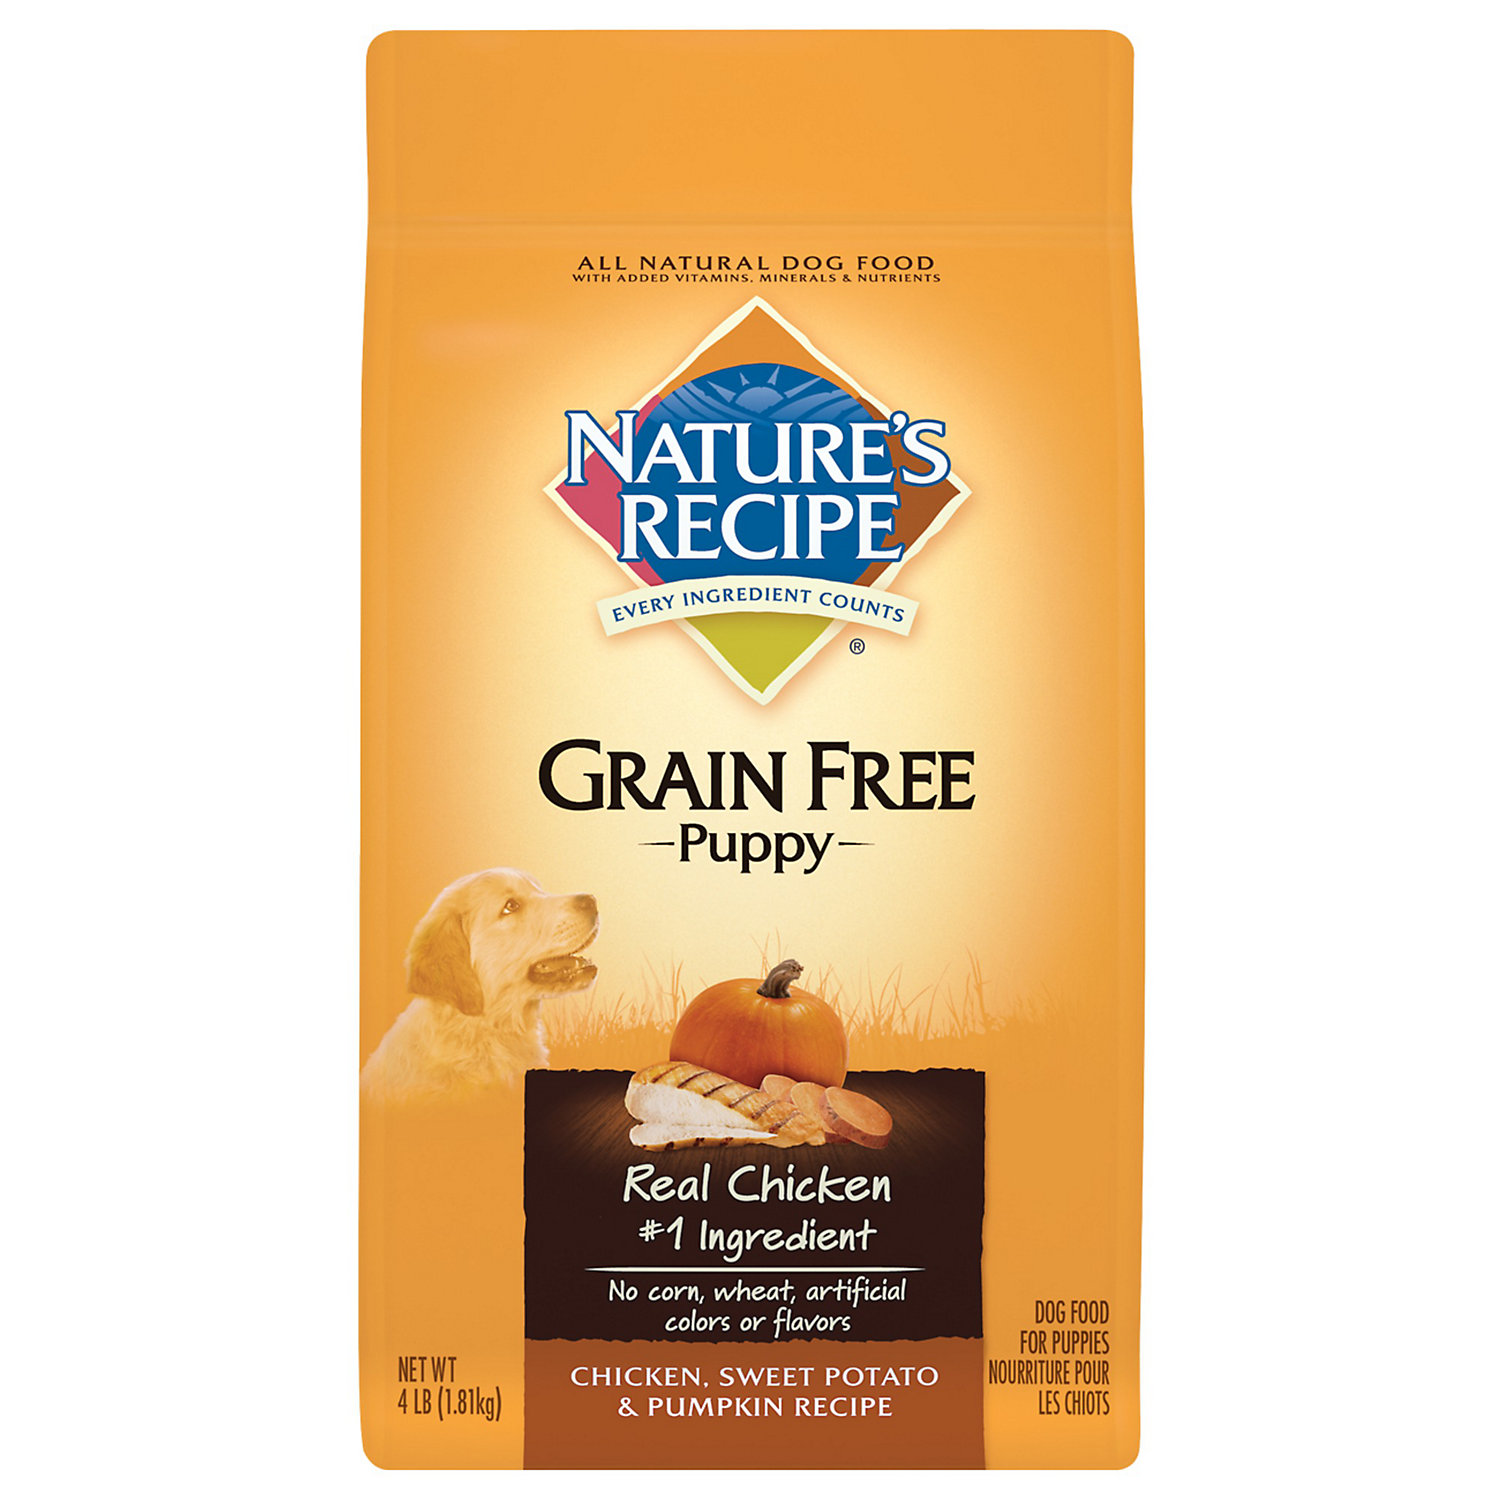 Natures Recipe Grain Free Dog Food